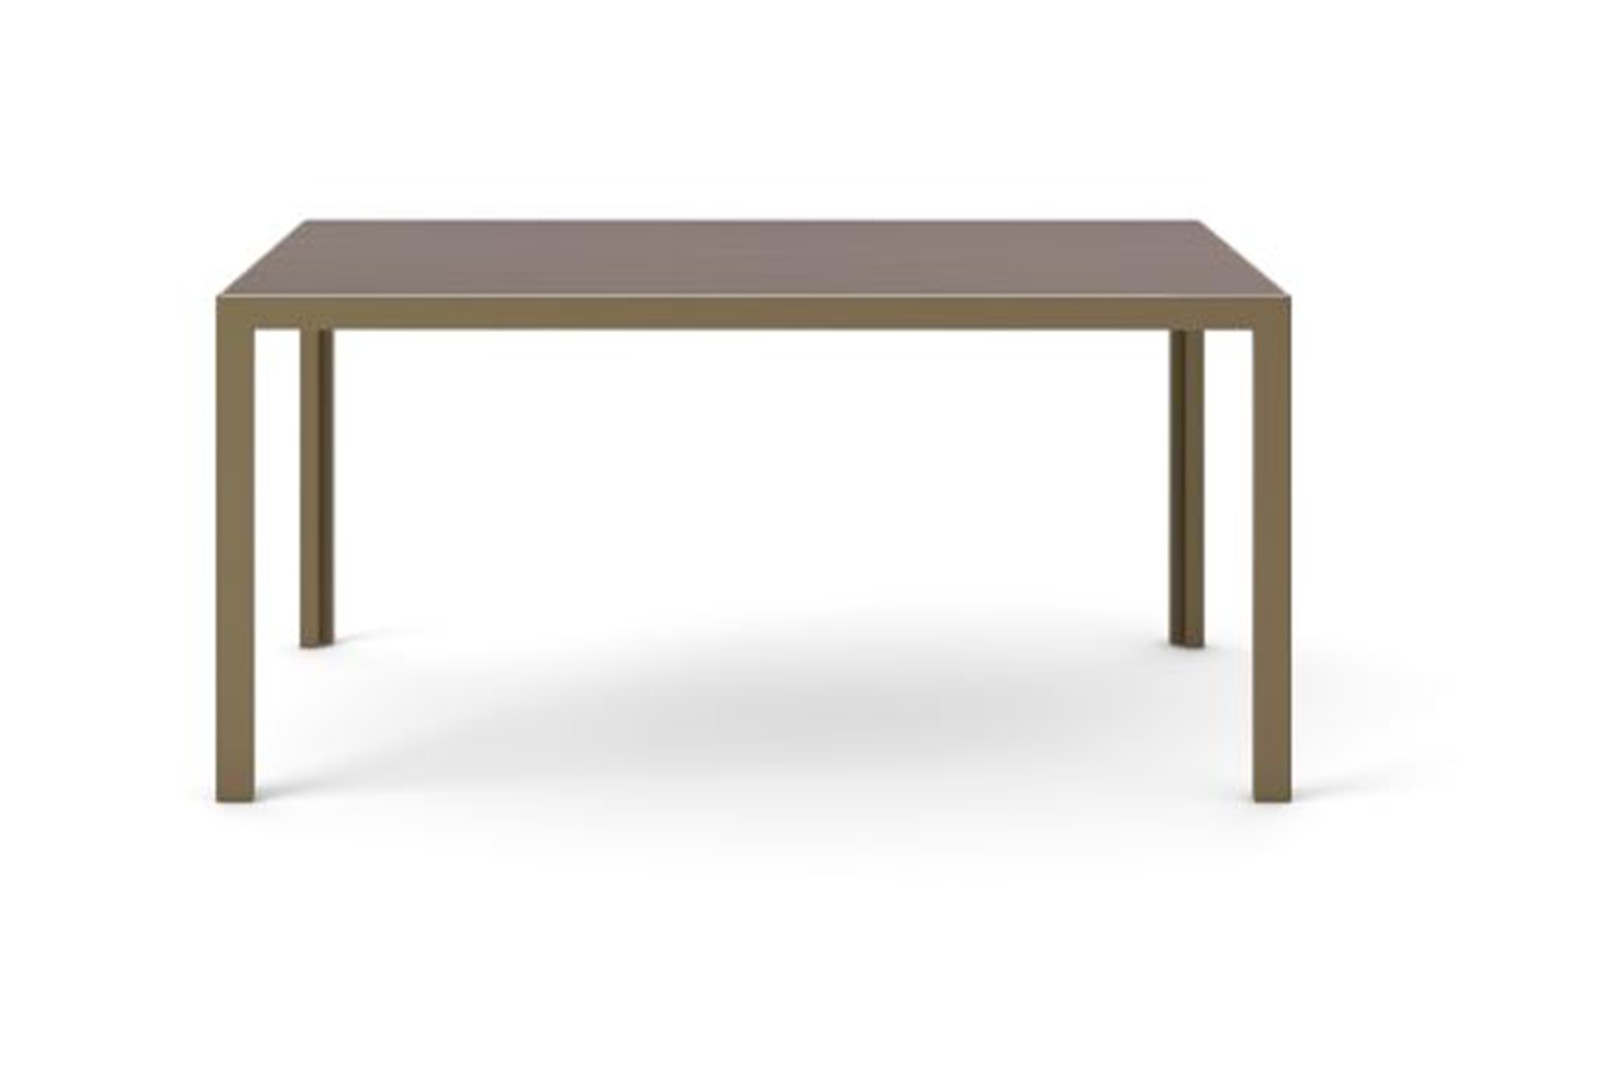 Dénia Dining Table, Rectangular Bronze Anodised Aluminium, Dark Stained Walnut, 200